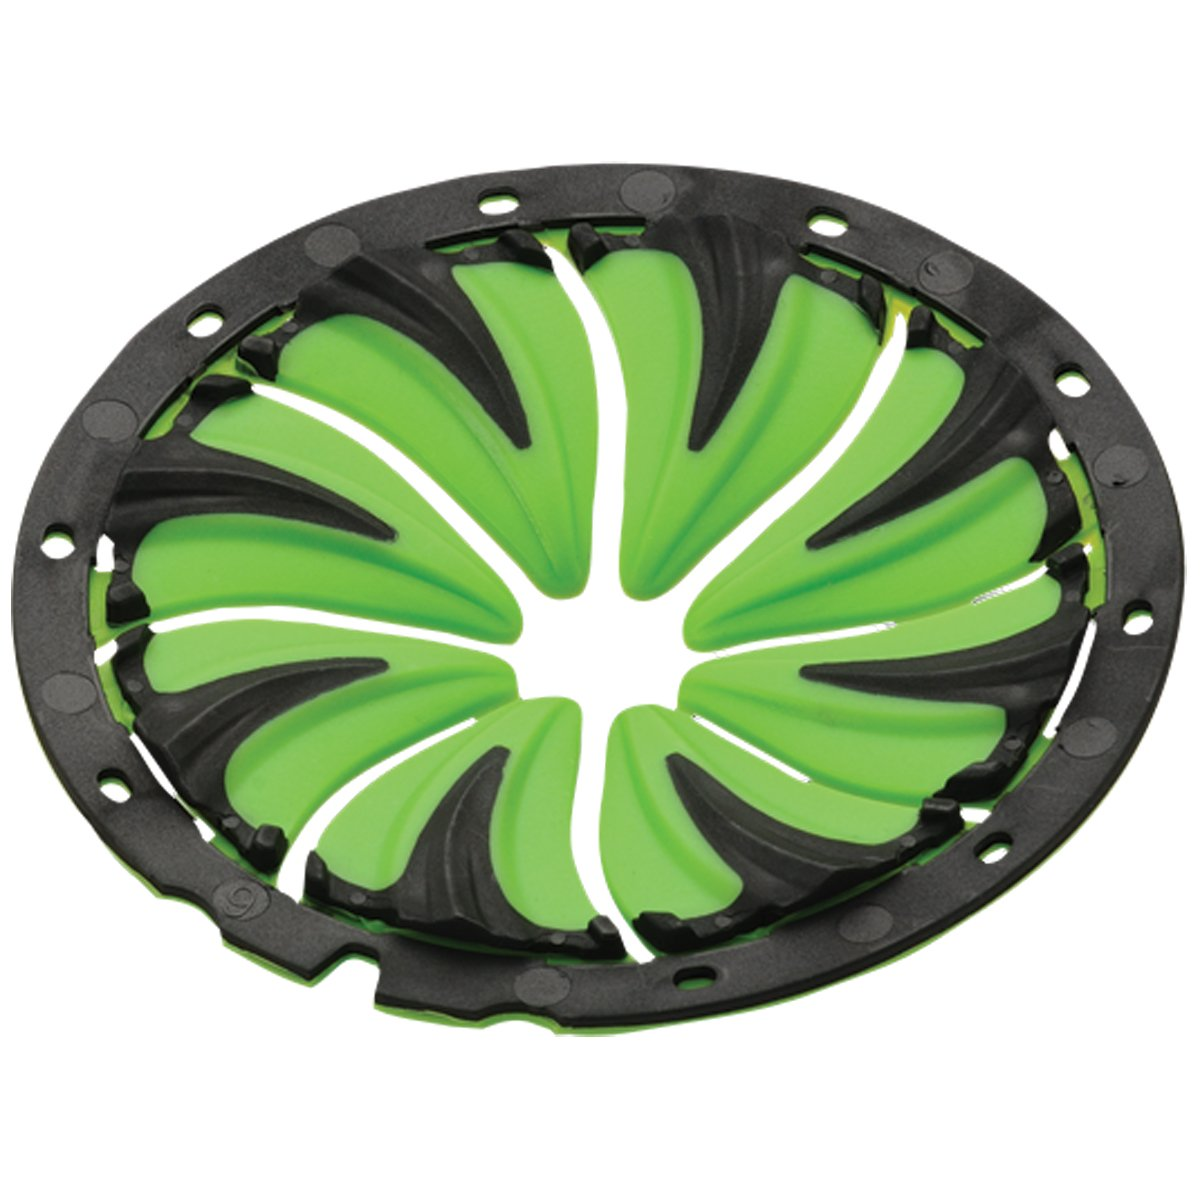 Dye Precision Rotor Loader Quick Feed - Black/Lime by Dye